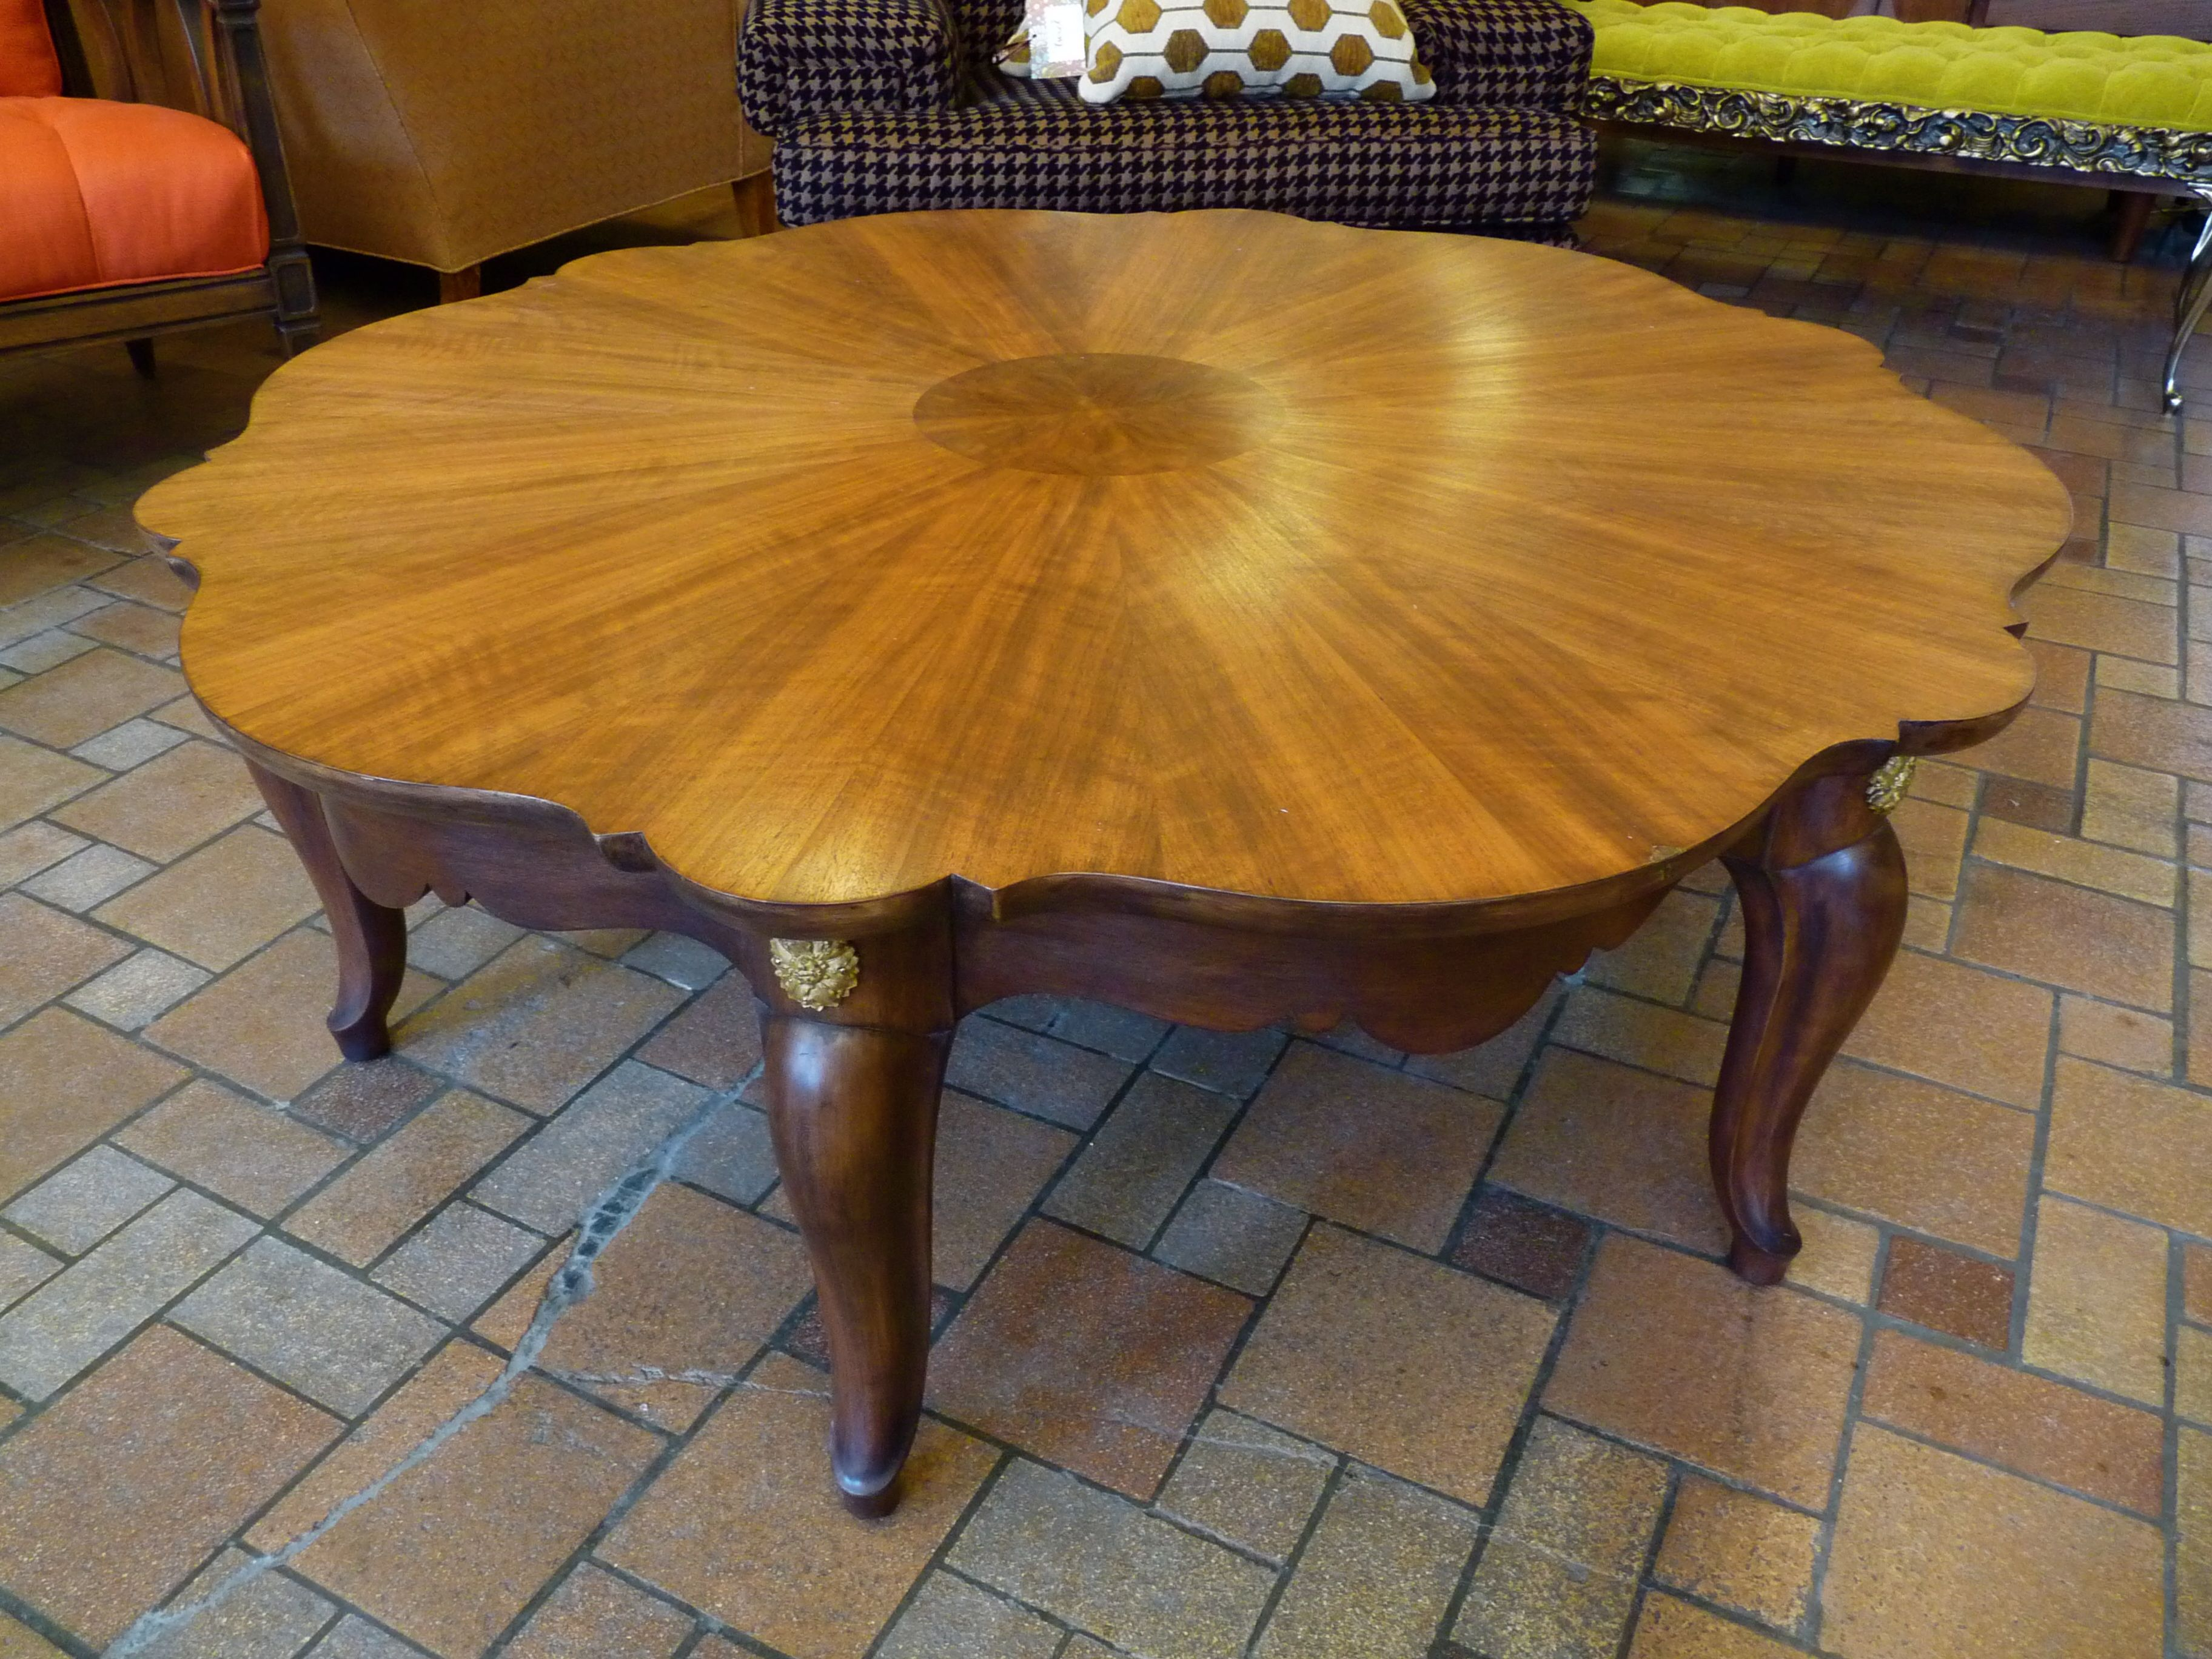 Restored vintage Baker coffee table Twice by Kelly Rauch